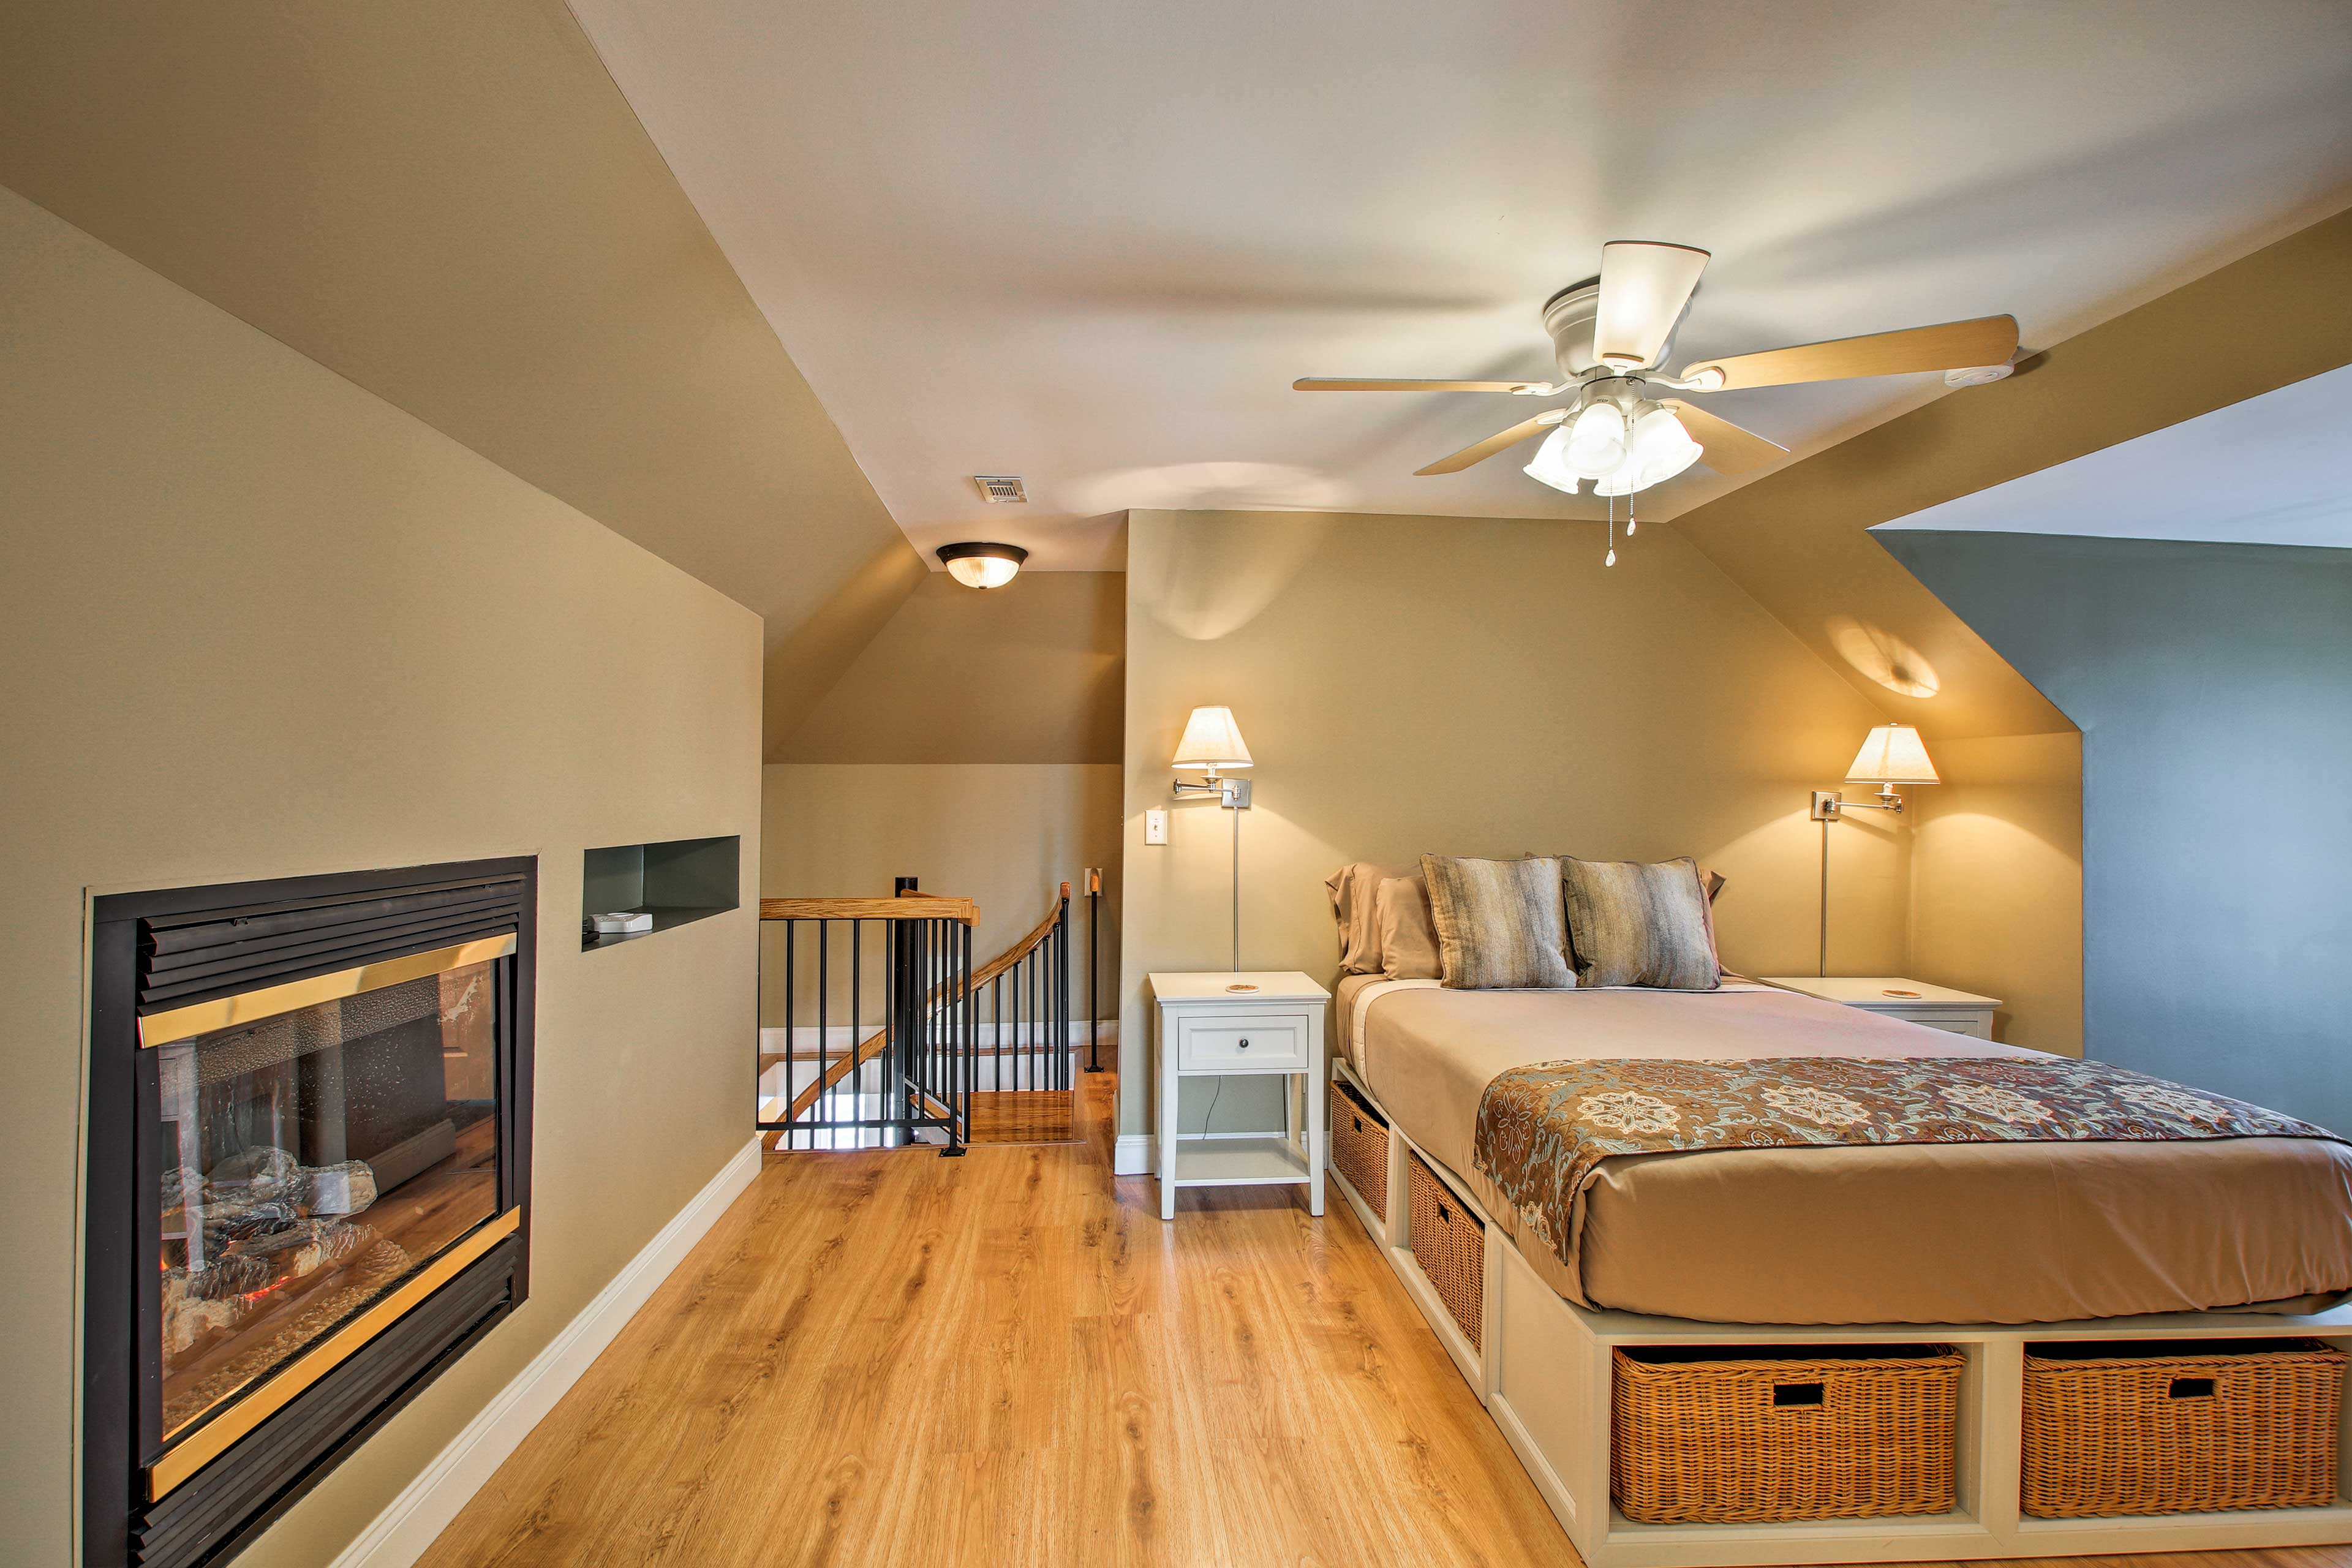 Make your way upstairs to relax in the second bedroom.